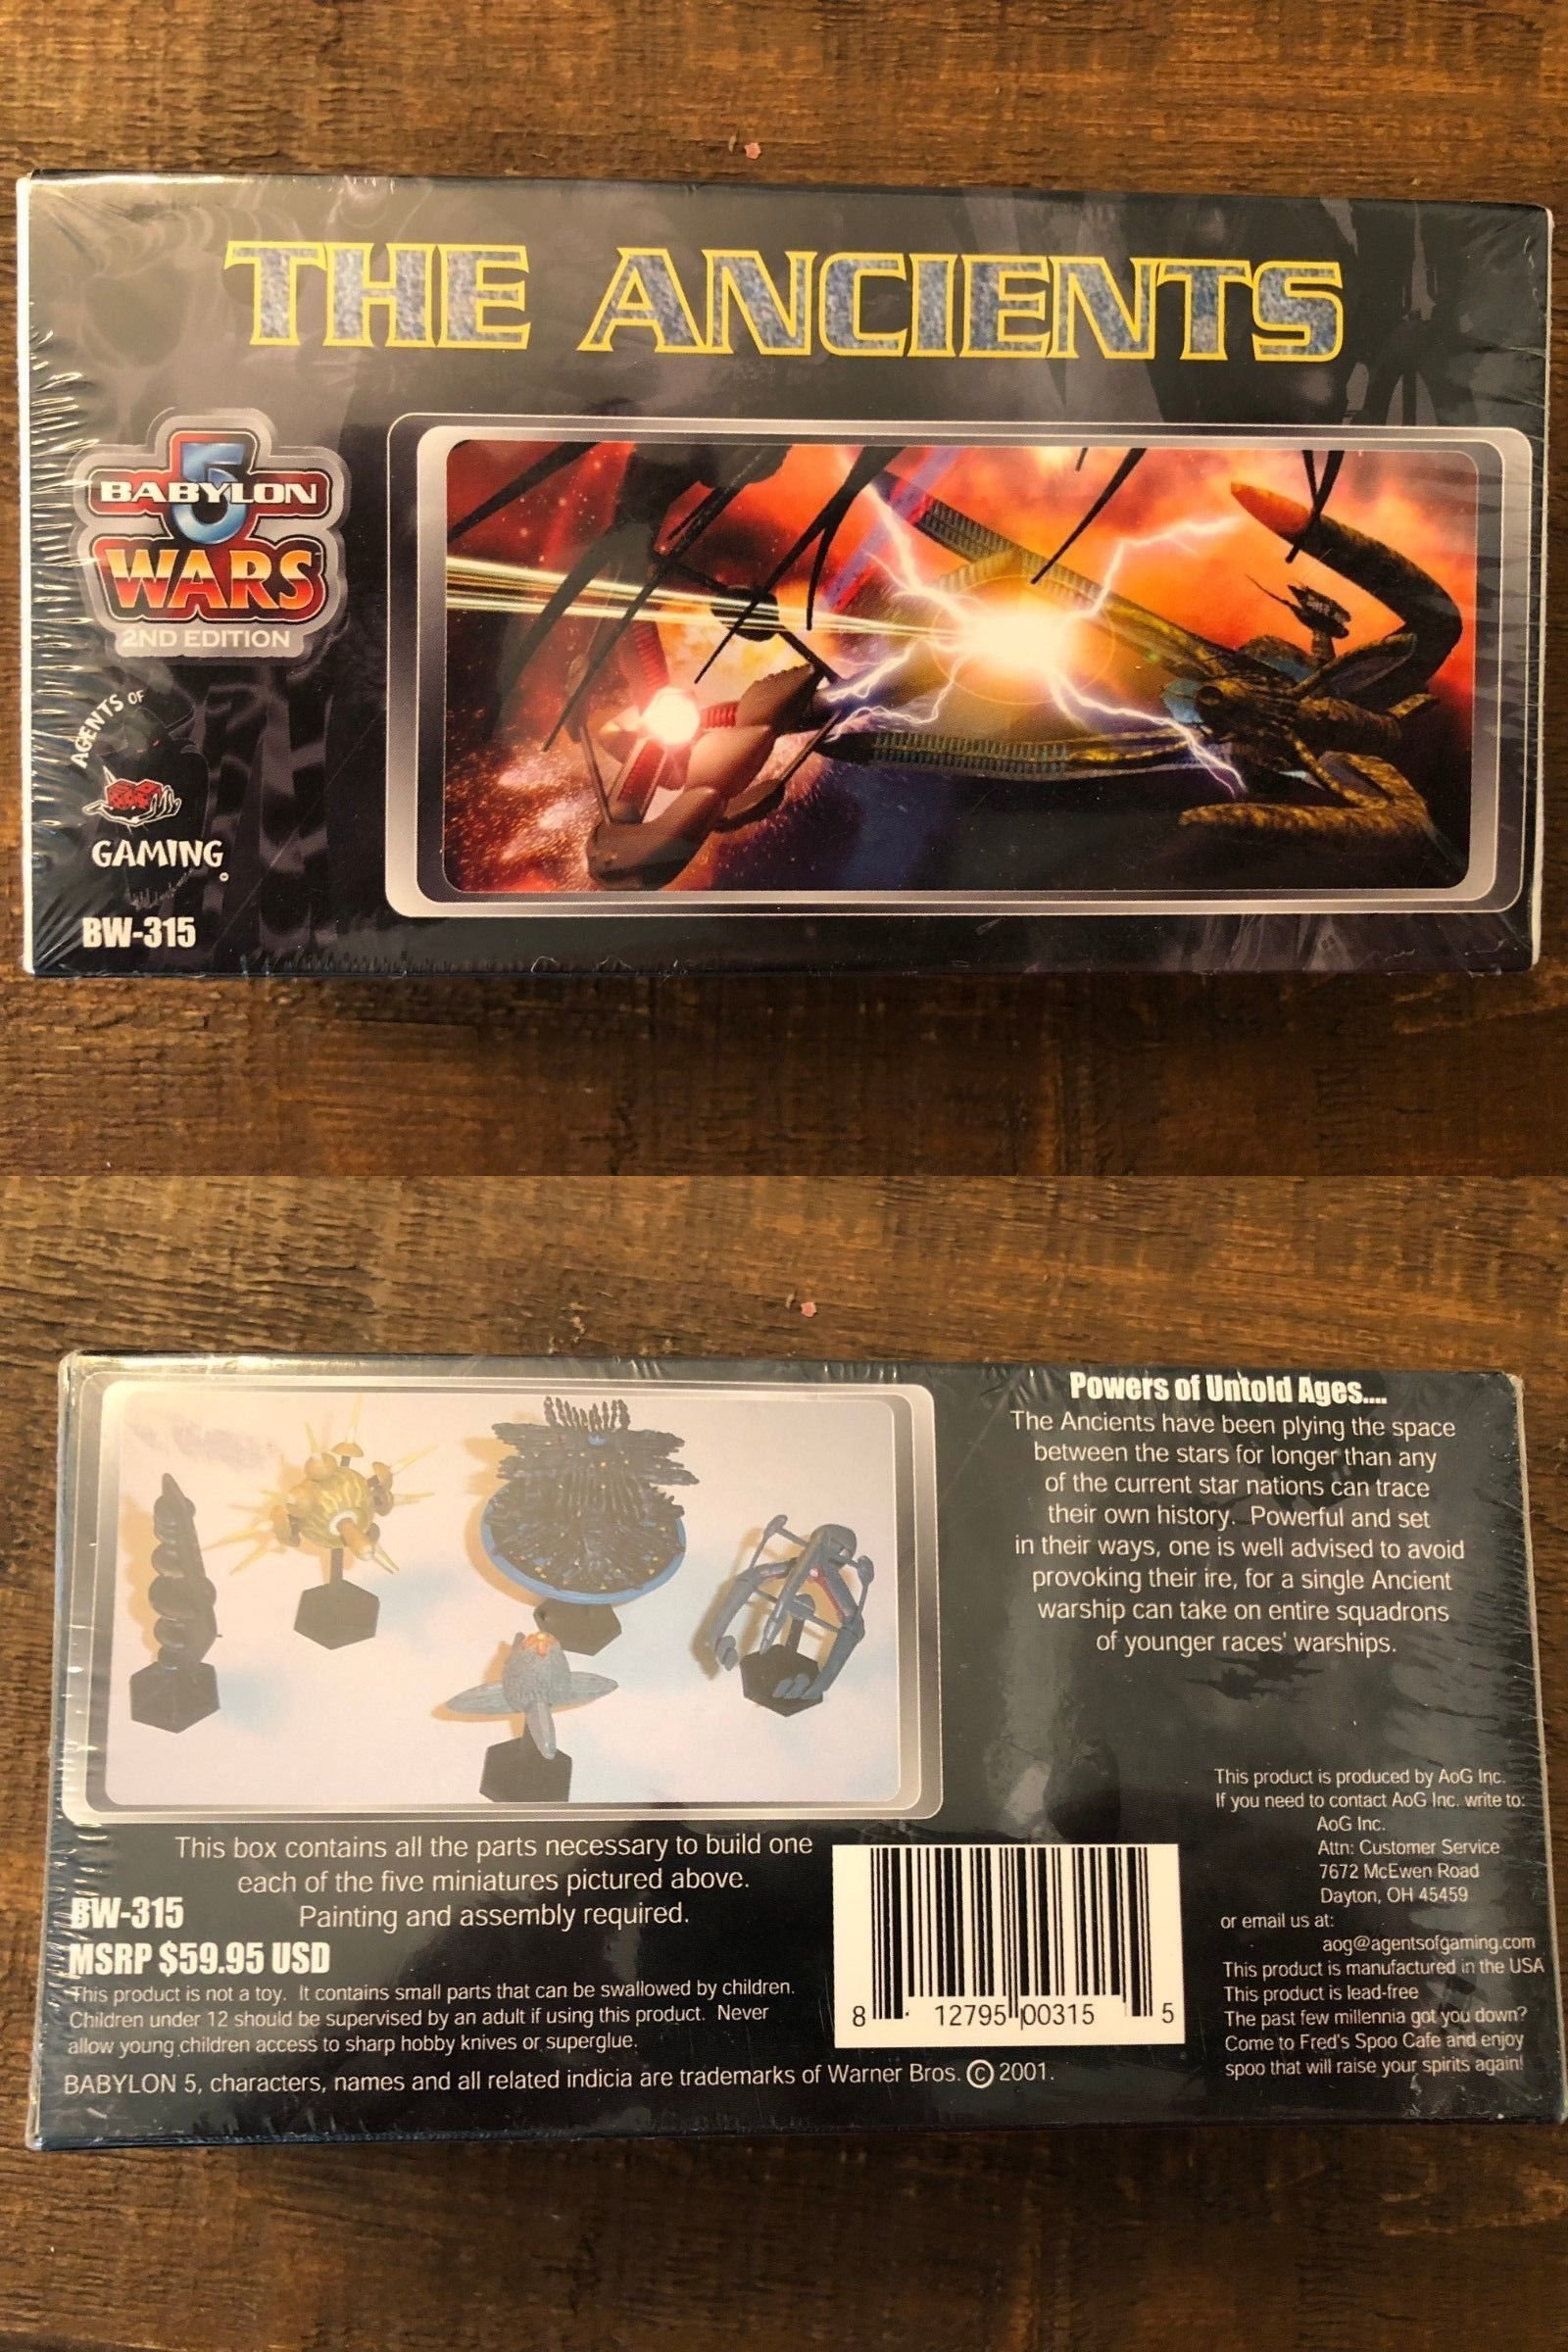 Rare Babylon 5 Limited Edition Component Game Cgs 2258 Core Set Games